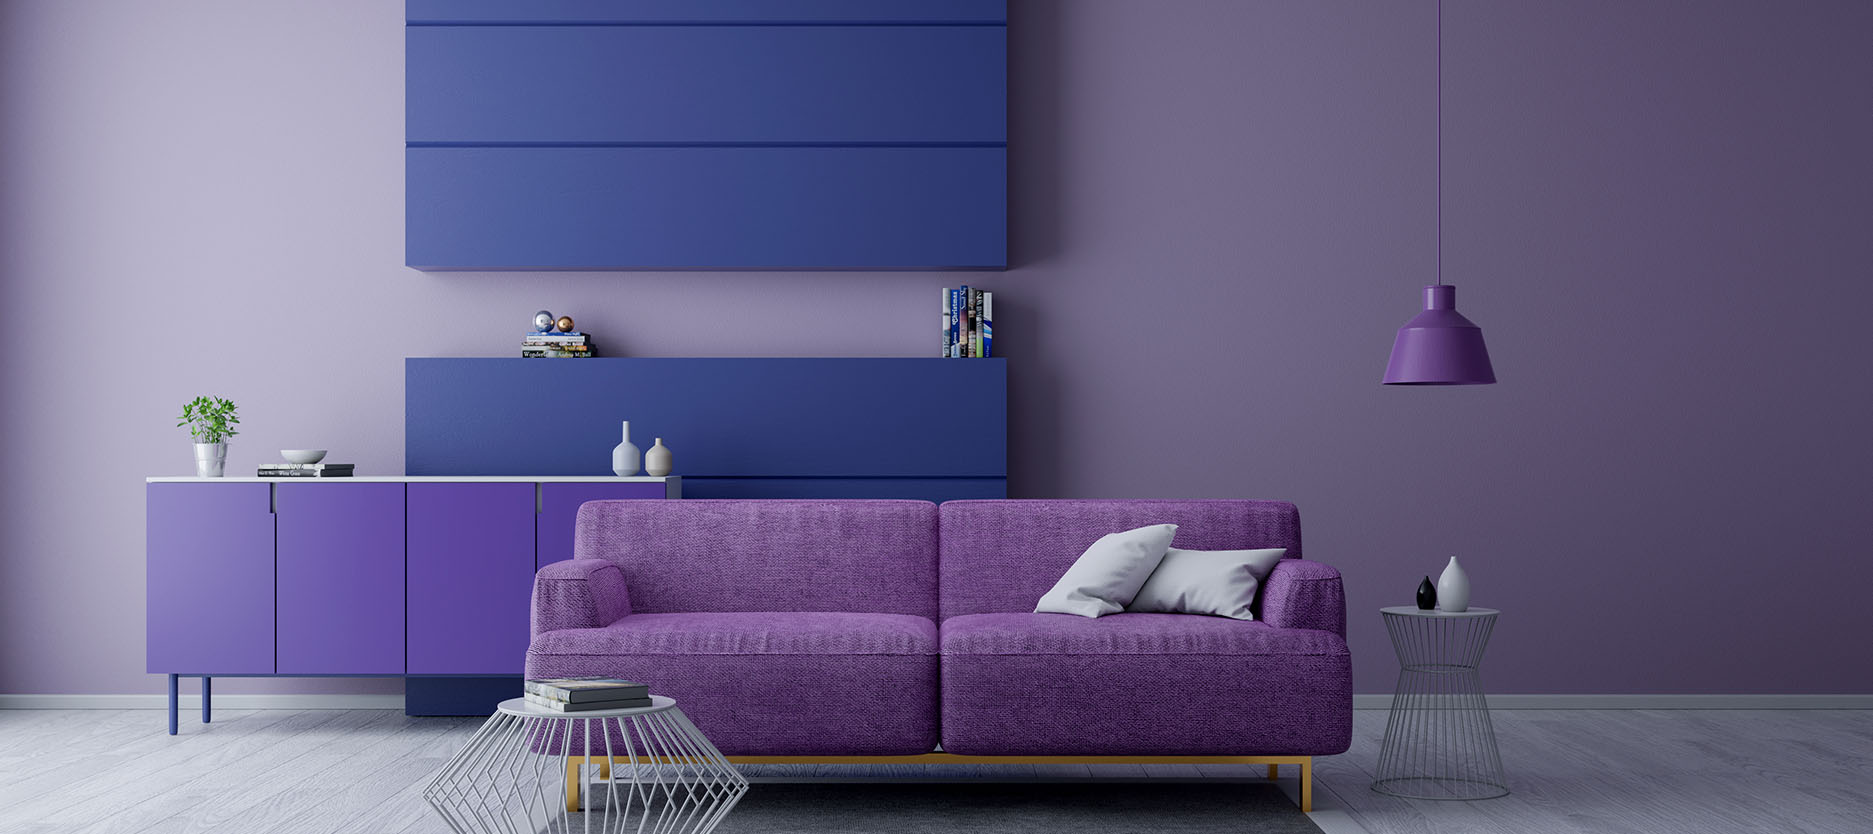 Experiment with 5 Shades of Purple in Your Home